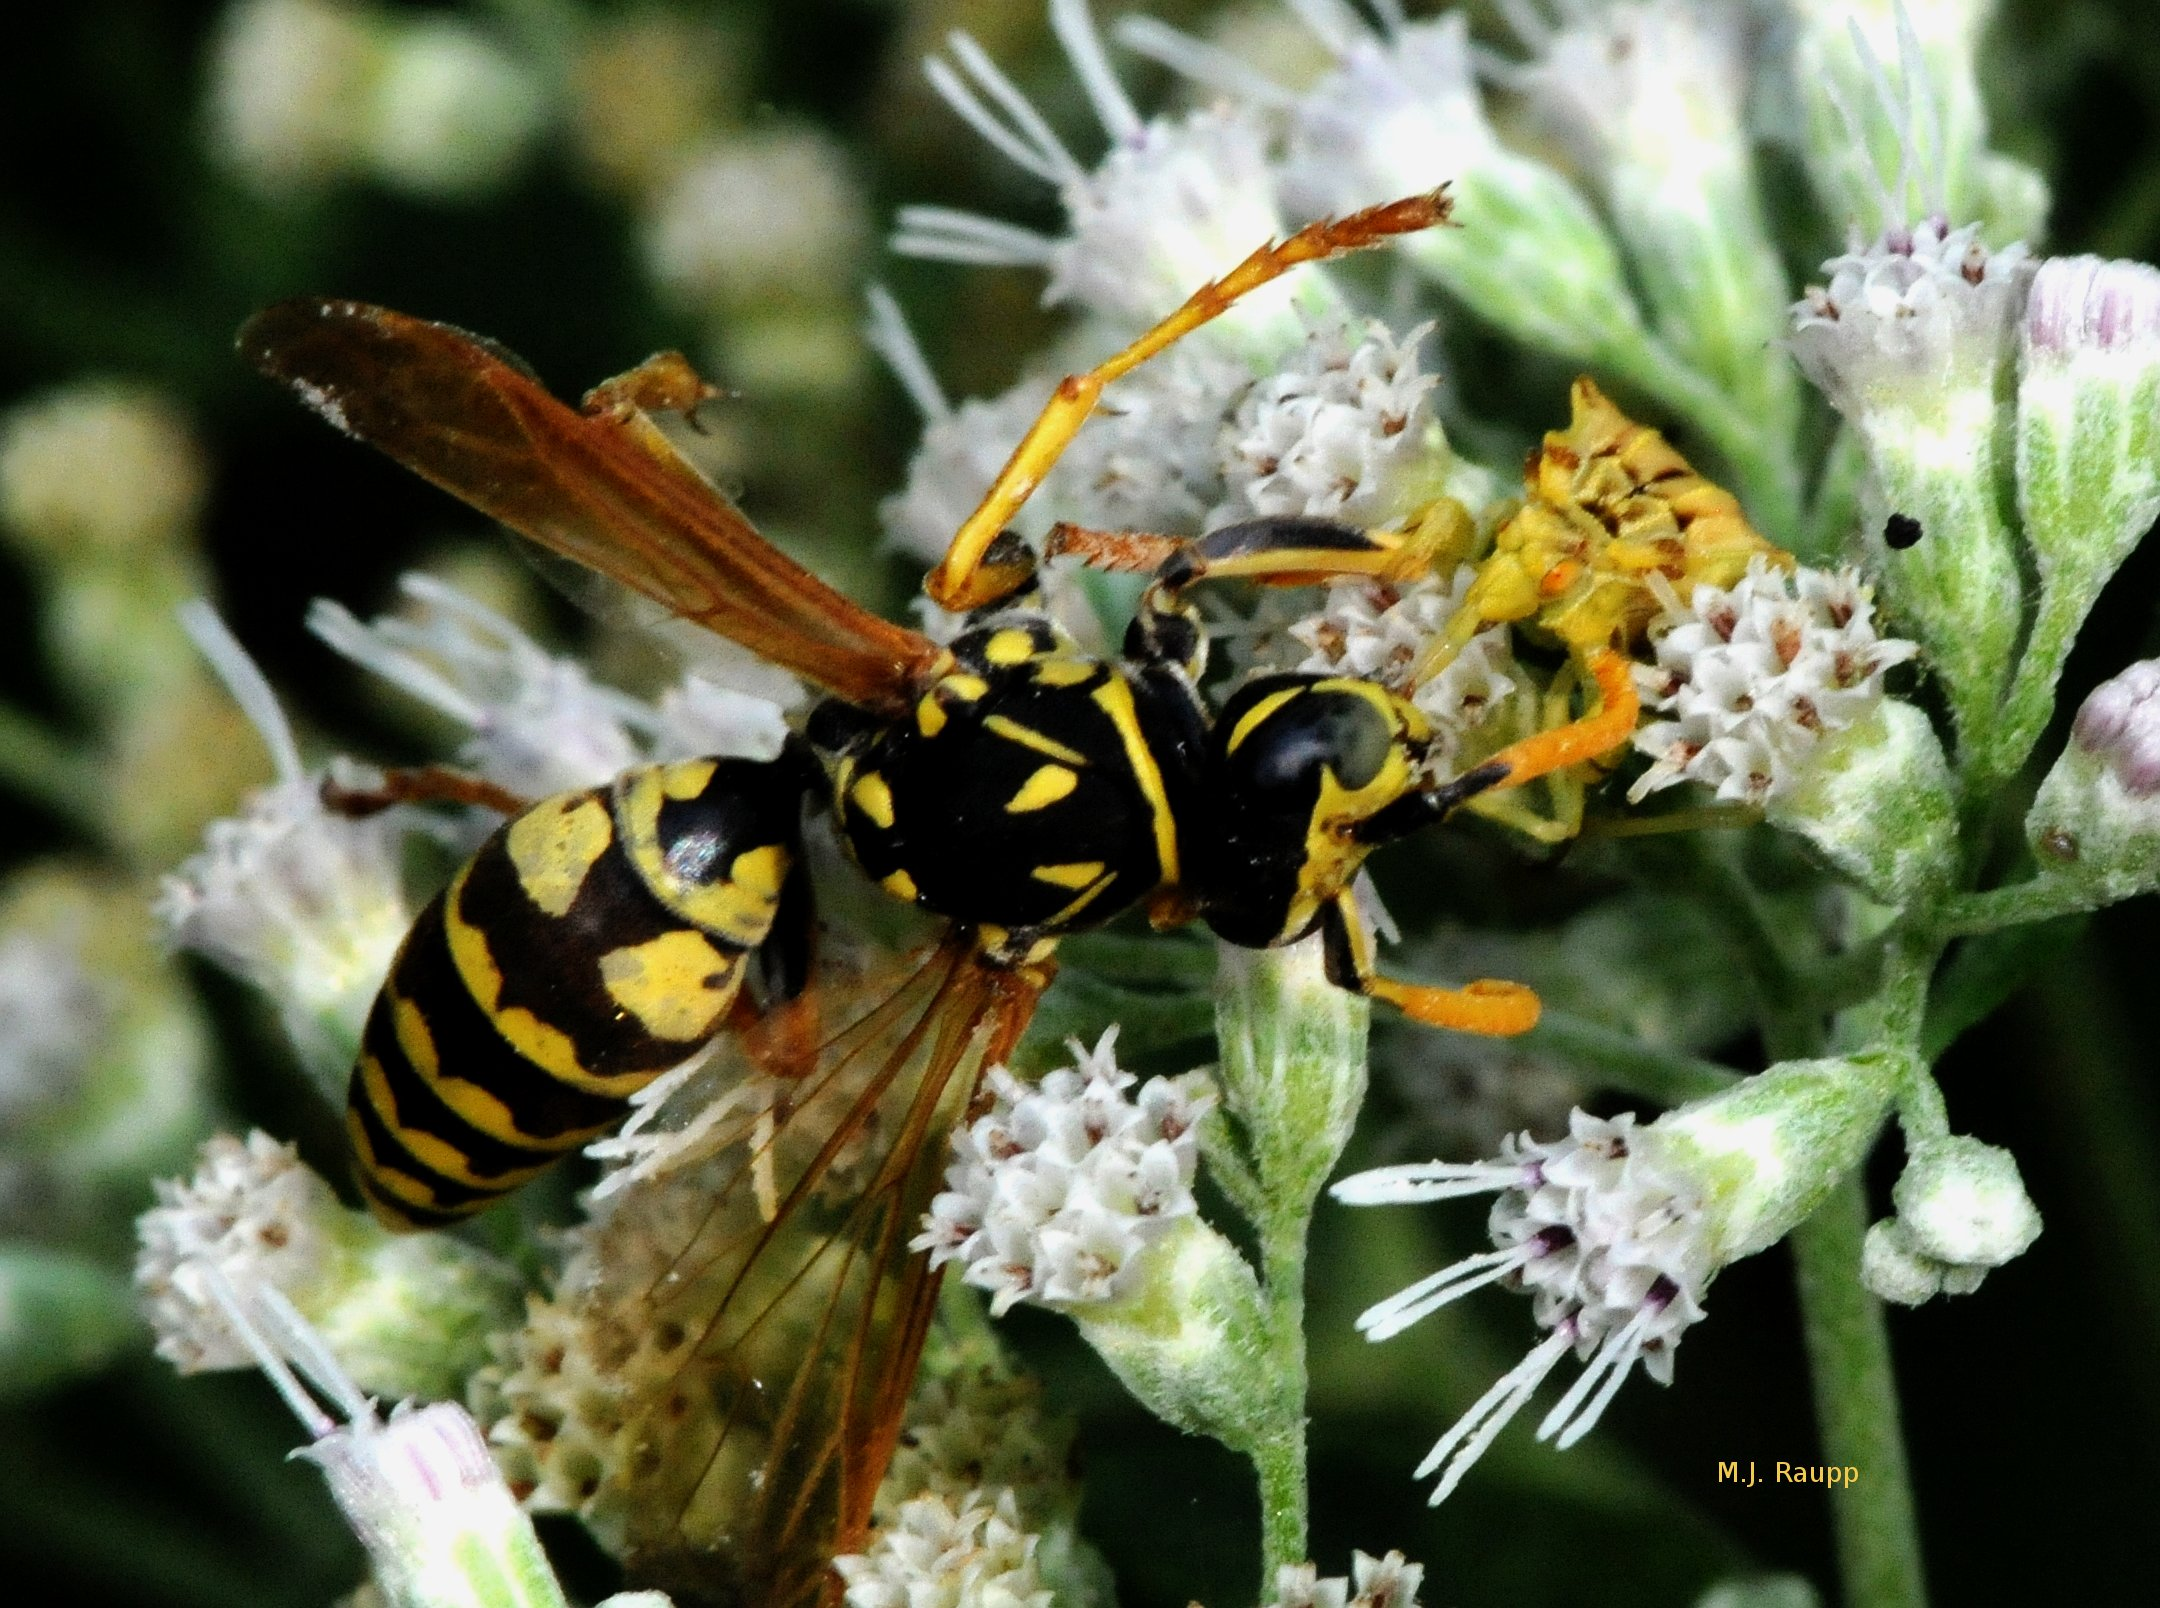 Look closely and you will see the ambush bug's beak inserted beneath the wasp's mouthparts.